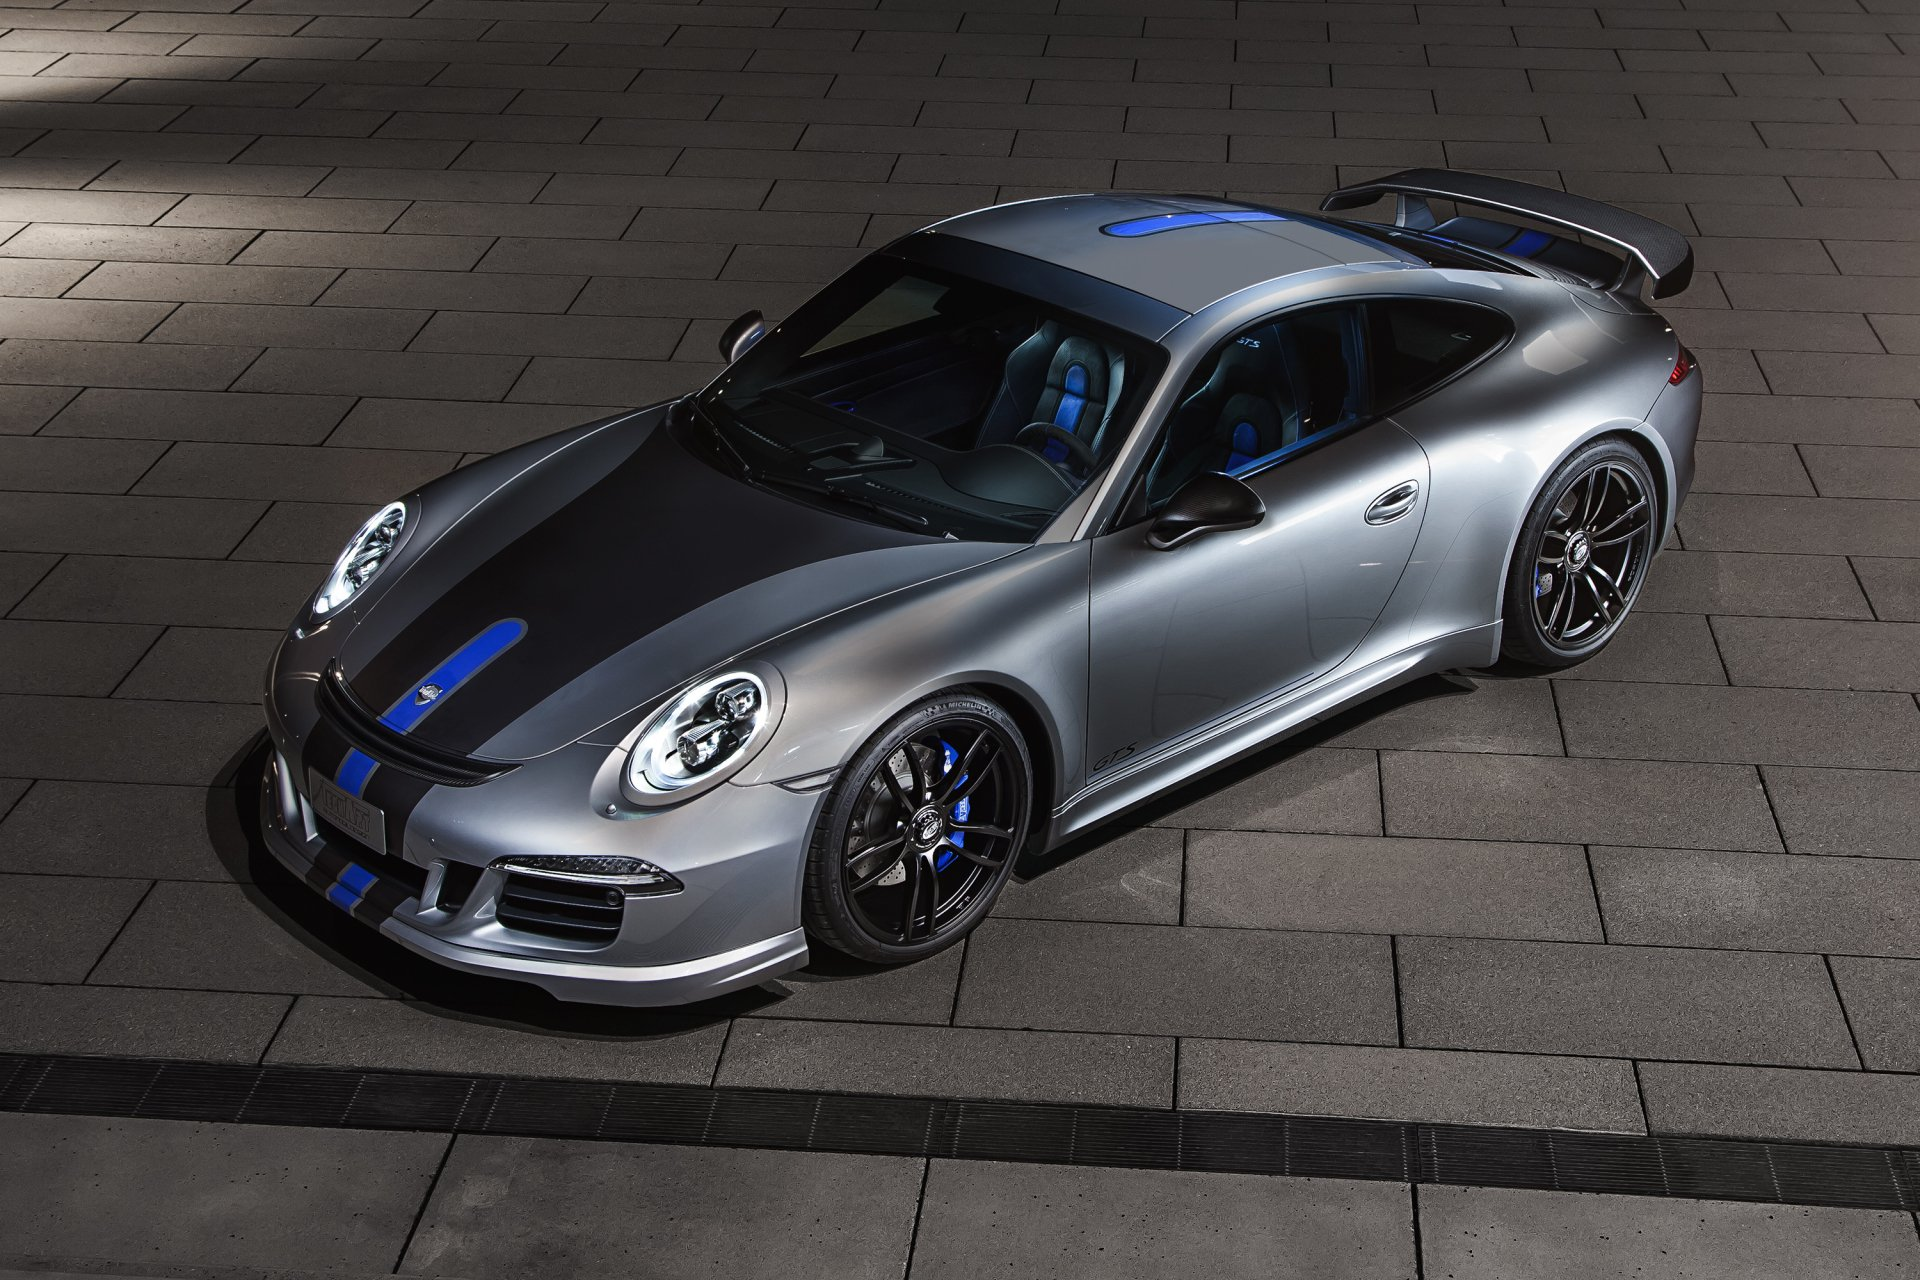 Vehicles - Porsche 911 Carrera  Porsche 911 Porsche Supercar Silver Car Car Vehicle Wallpaper